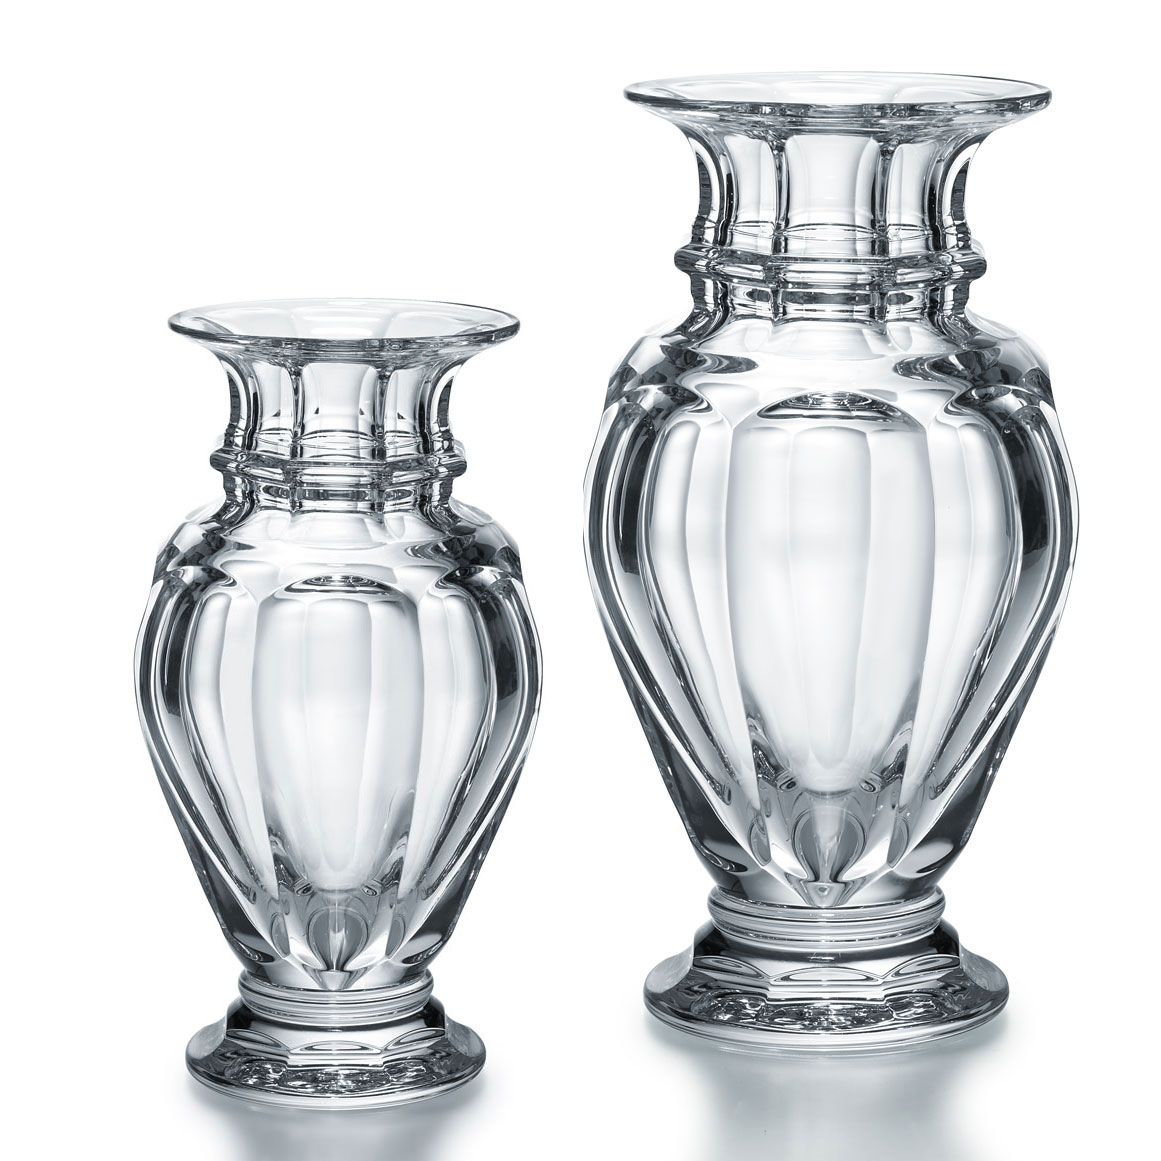 Baccarat Crystal, Harcourt Medium Baluster Crystal Vase, Clear